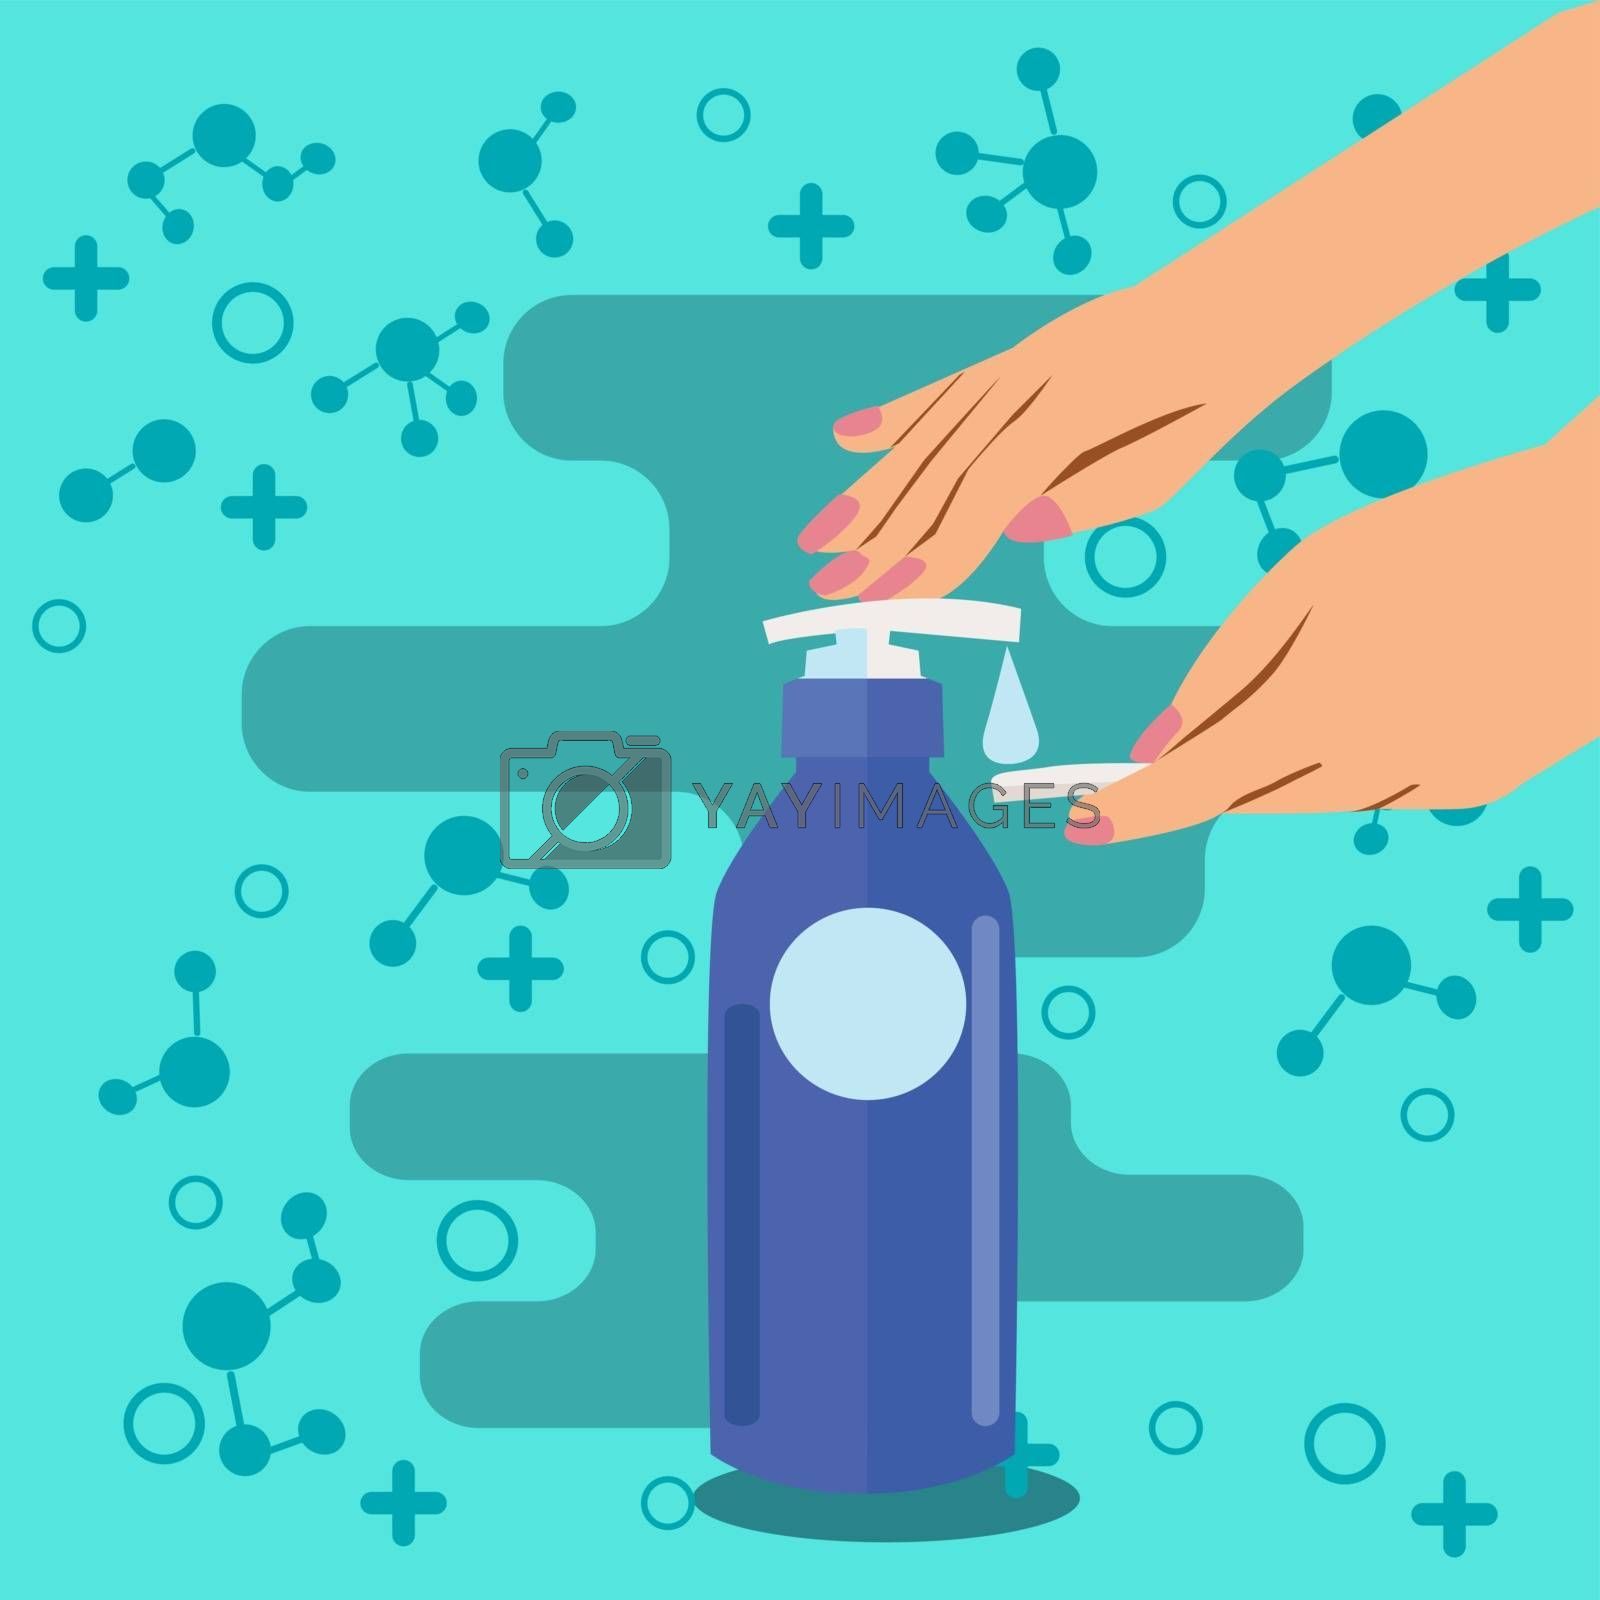 Hands Push down  the pump liquid soap or toner lotion. Cosmetic Hygiene product Liquid lotion and cotton pad symbol on a green background .